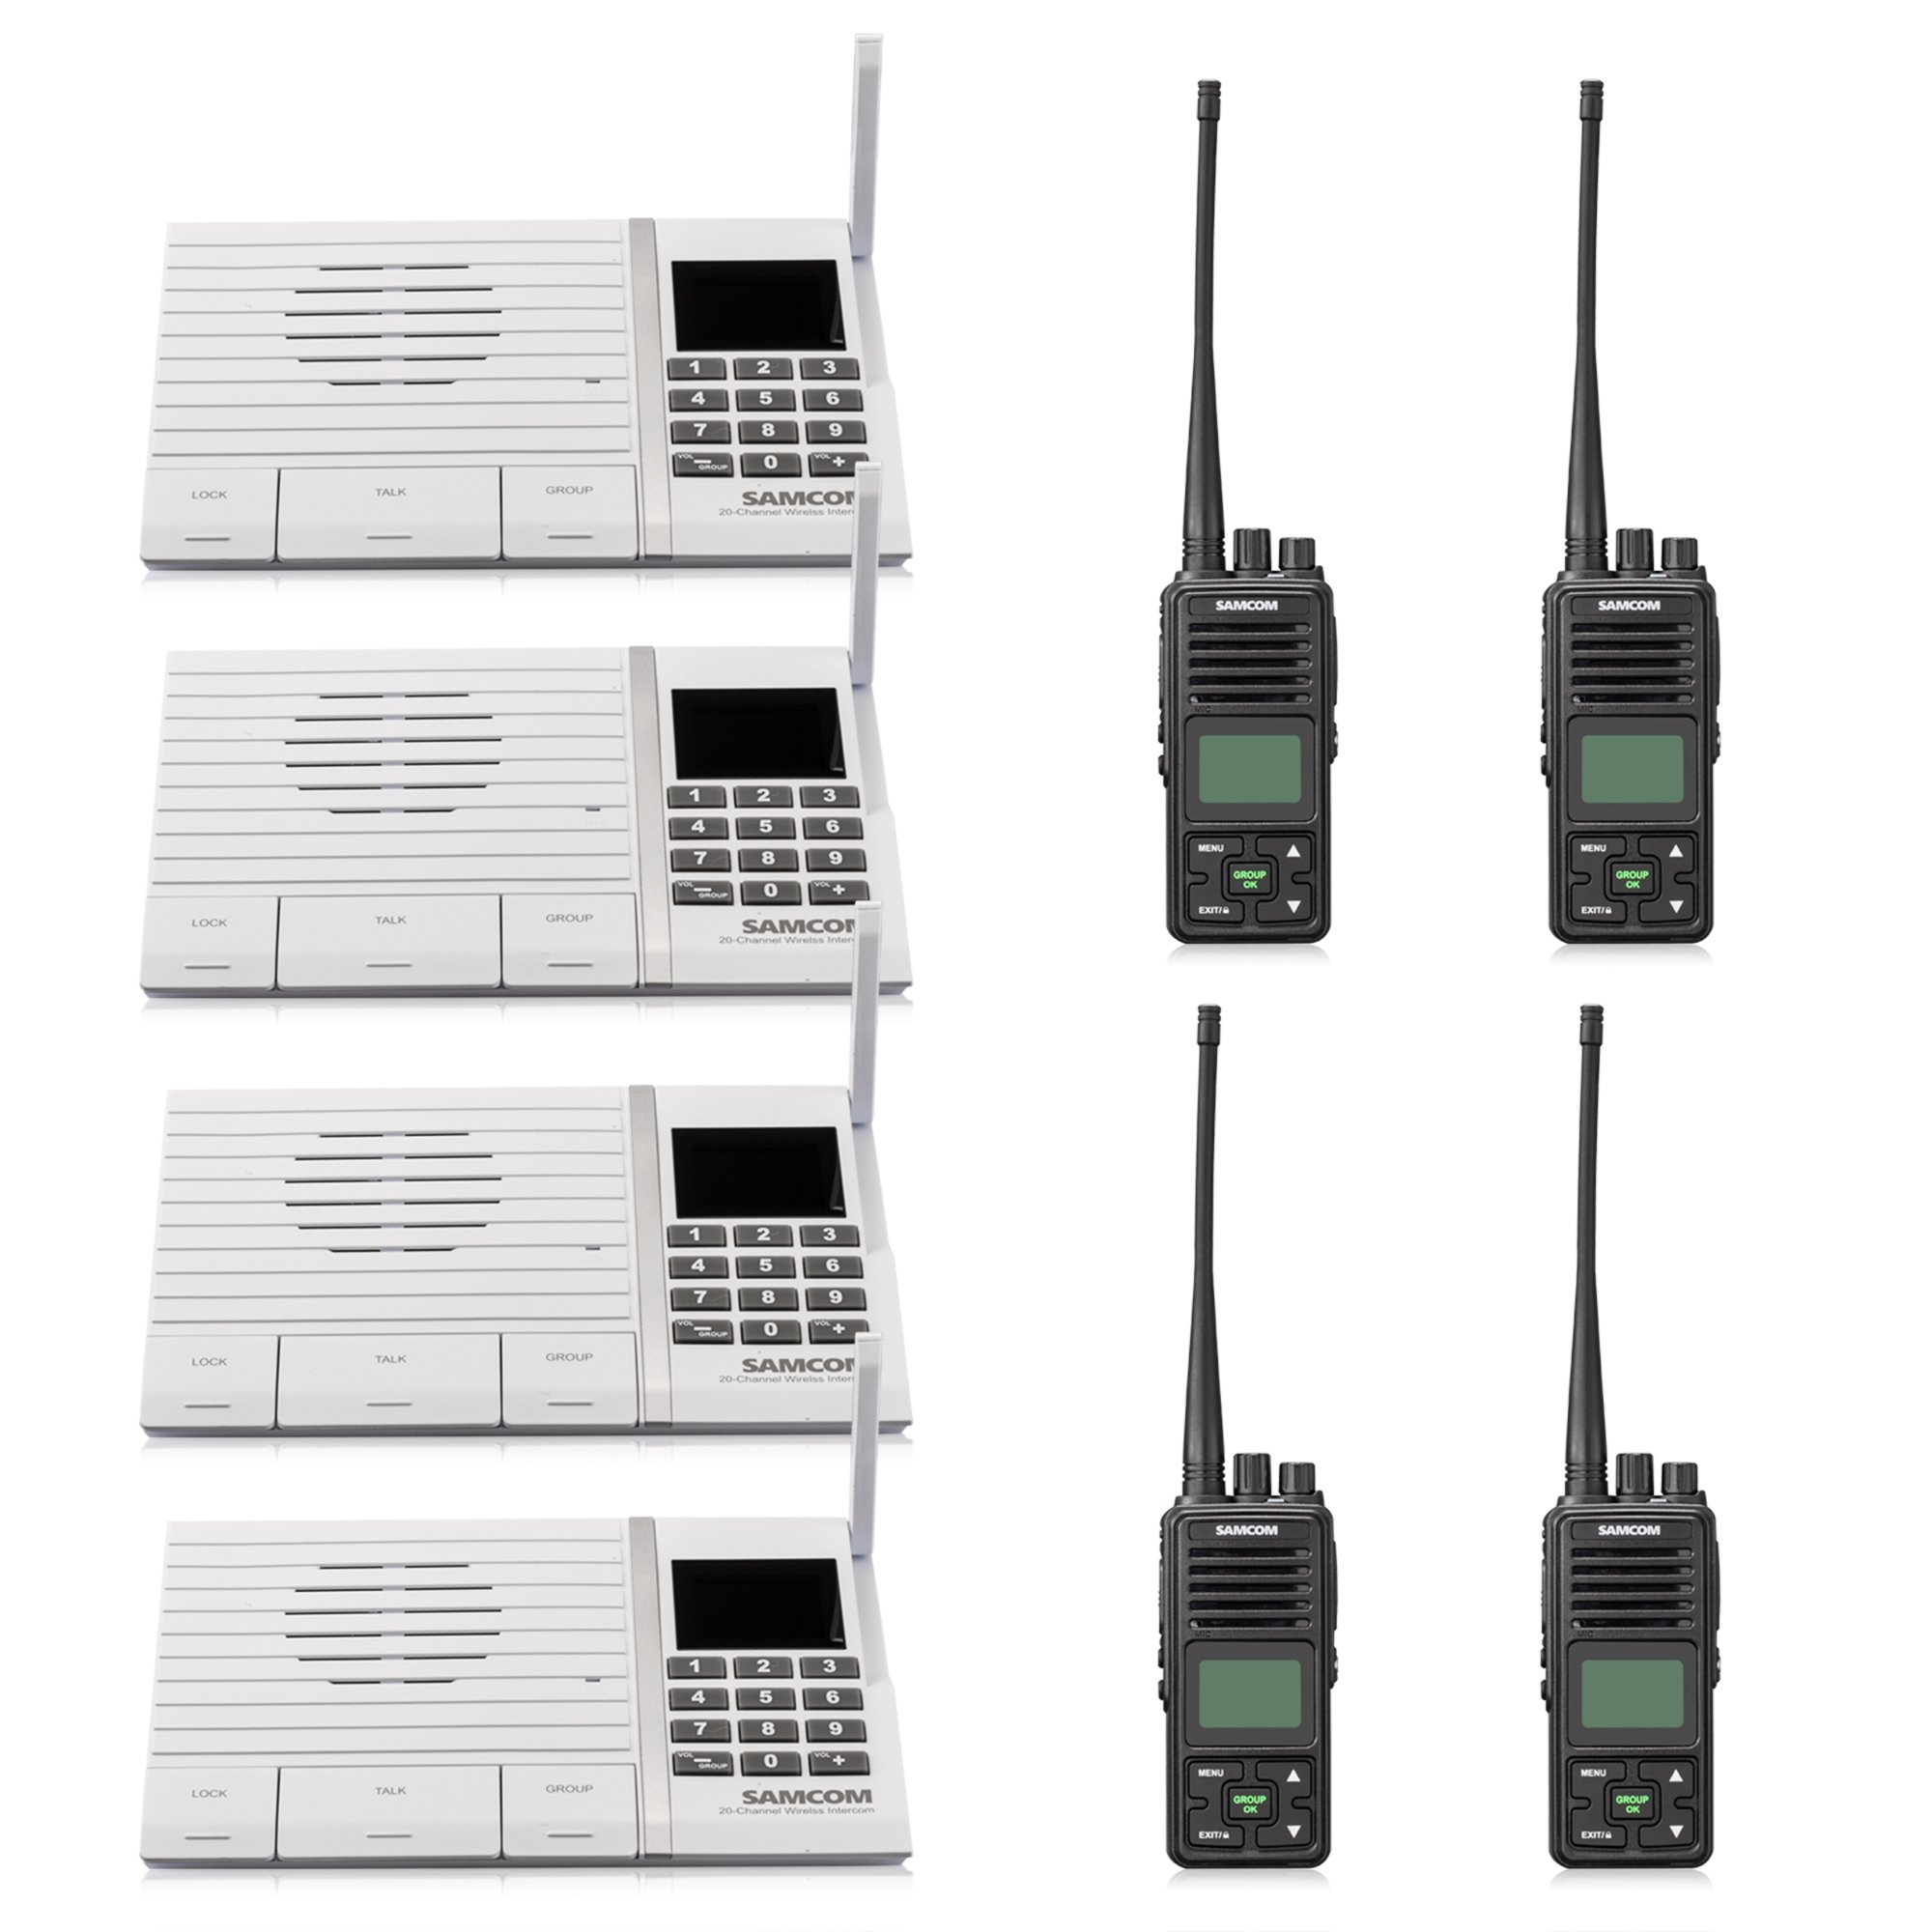 Samcom 20 Channel with Group Button Wireless intercom,UHF 400-470MHz Two Way Radio with 2.5 Miles Range(4 Black +4 White) by samcom